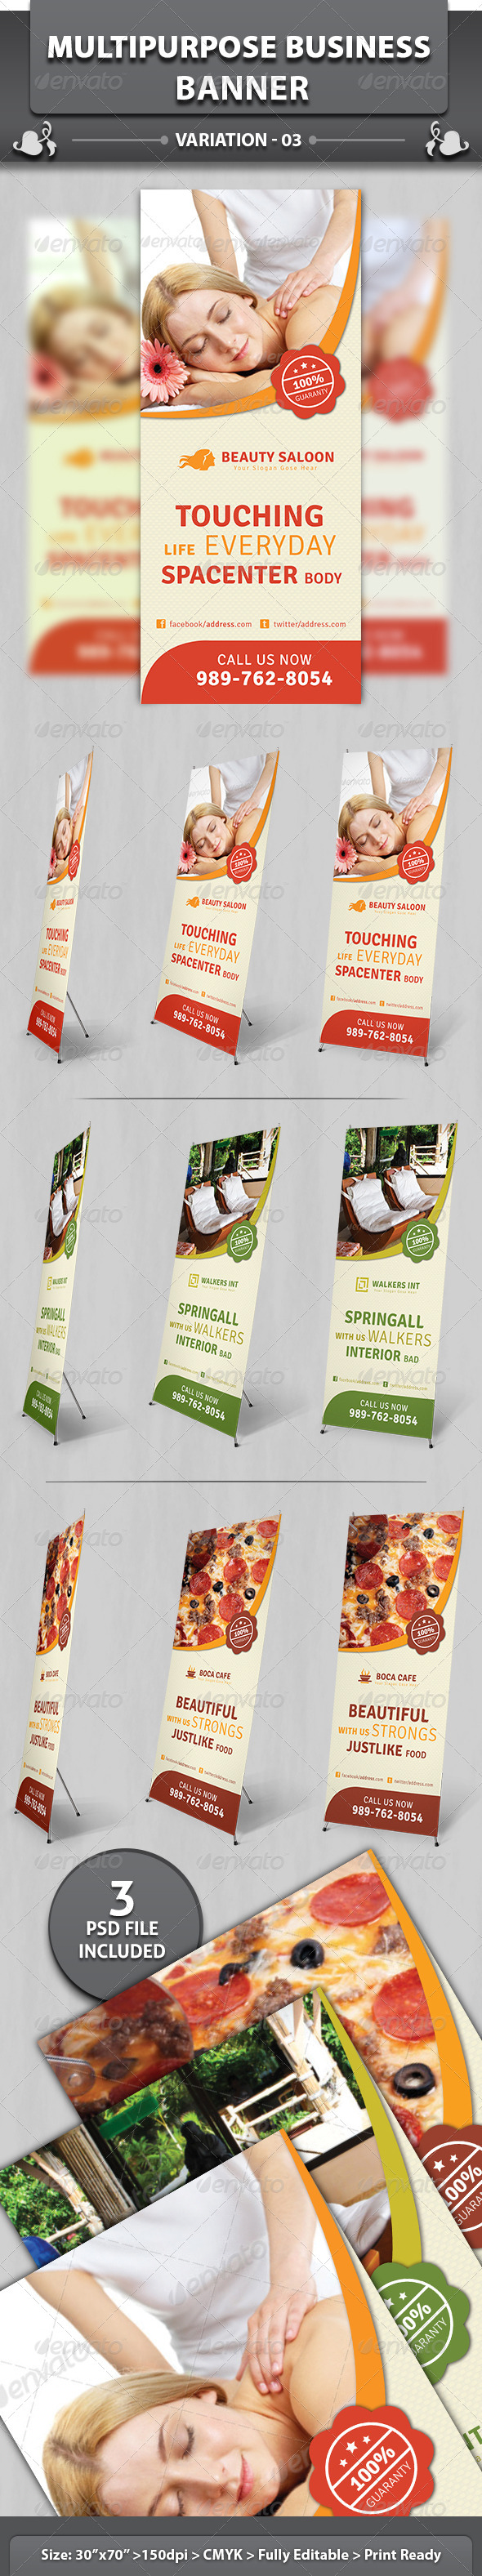 Multipurpose Business Banner | Volume 3 - Signage Print Templates